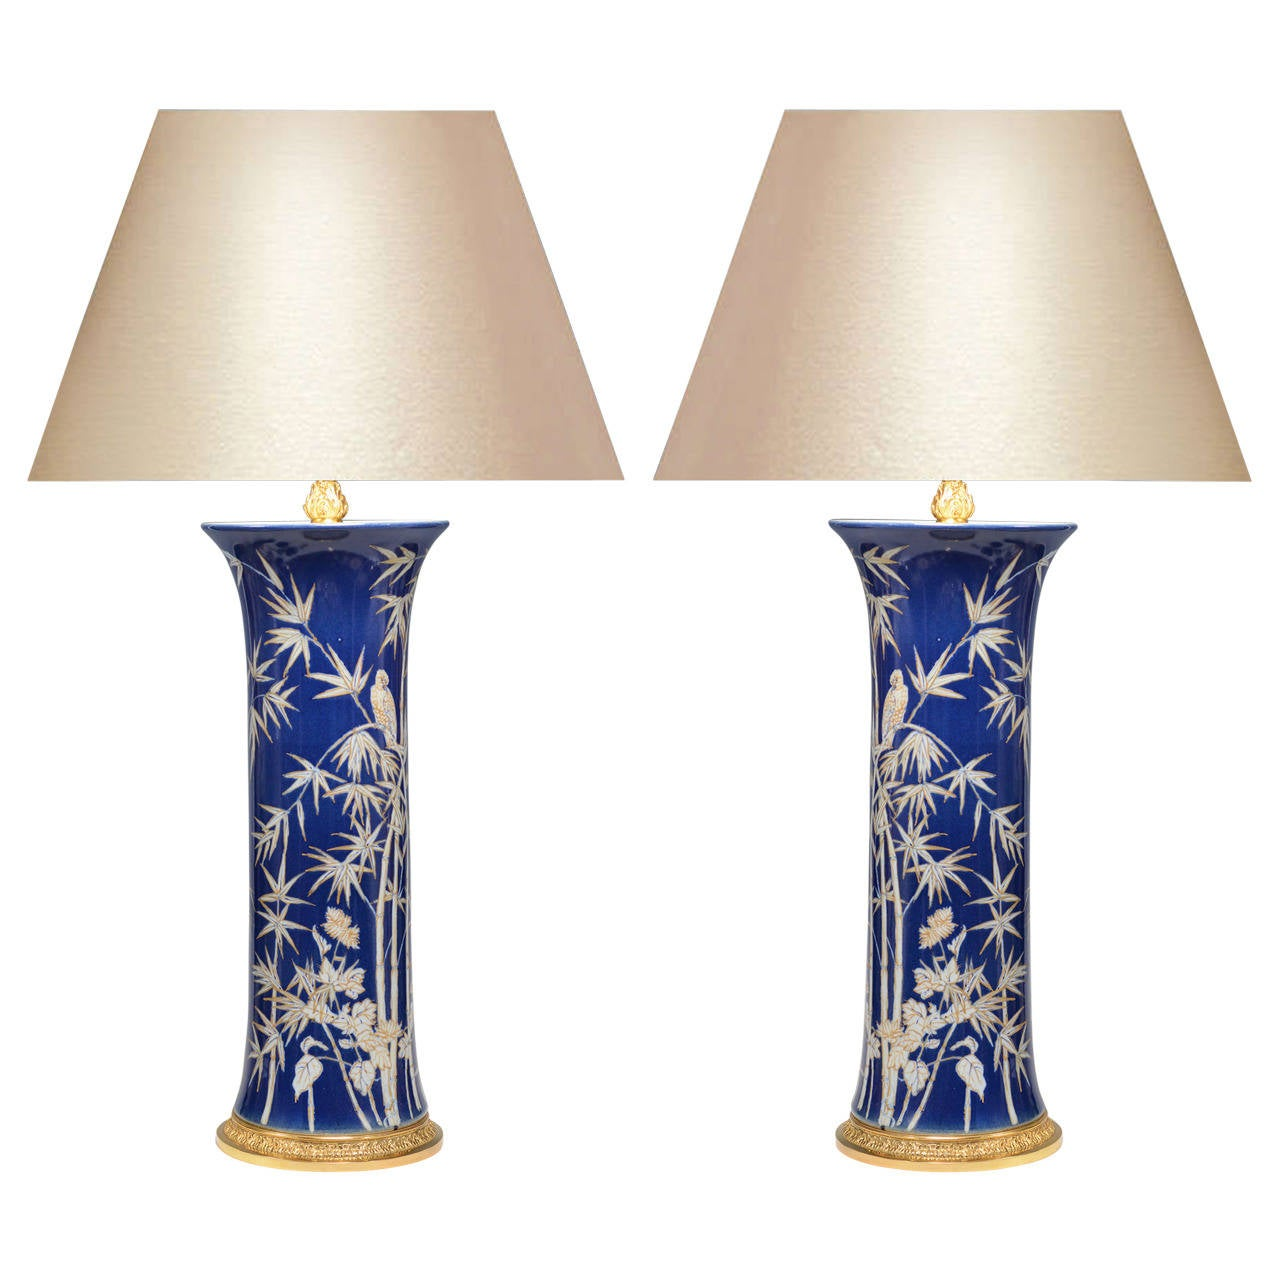 Pair of Fine Painted Blue and White Porcelain Lamps